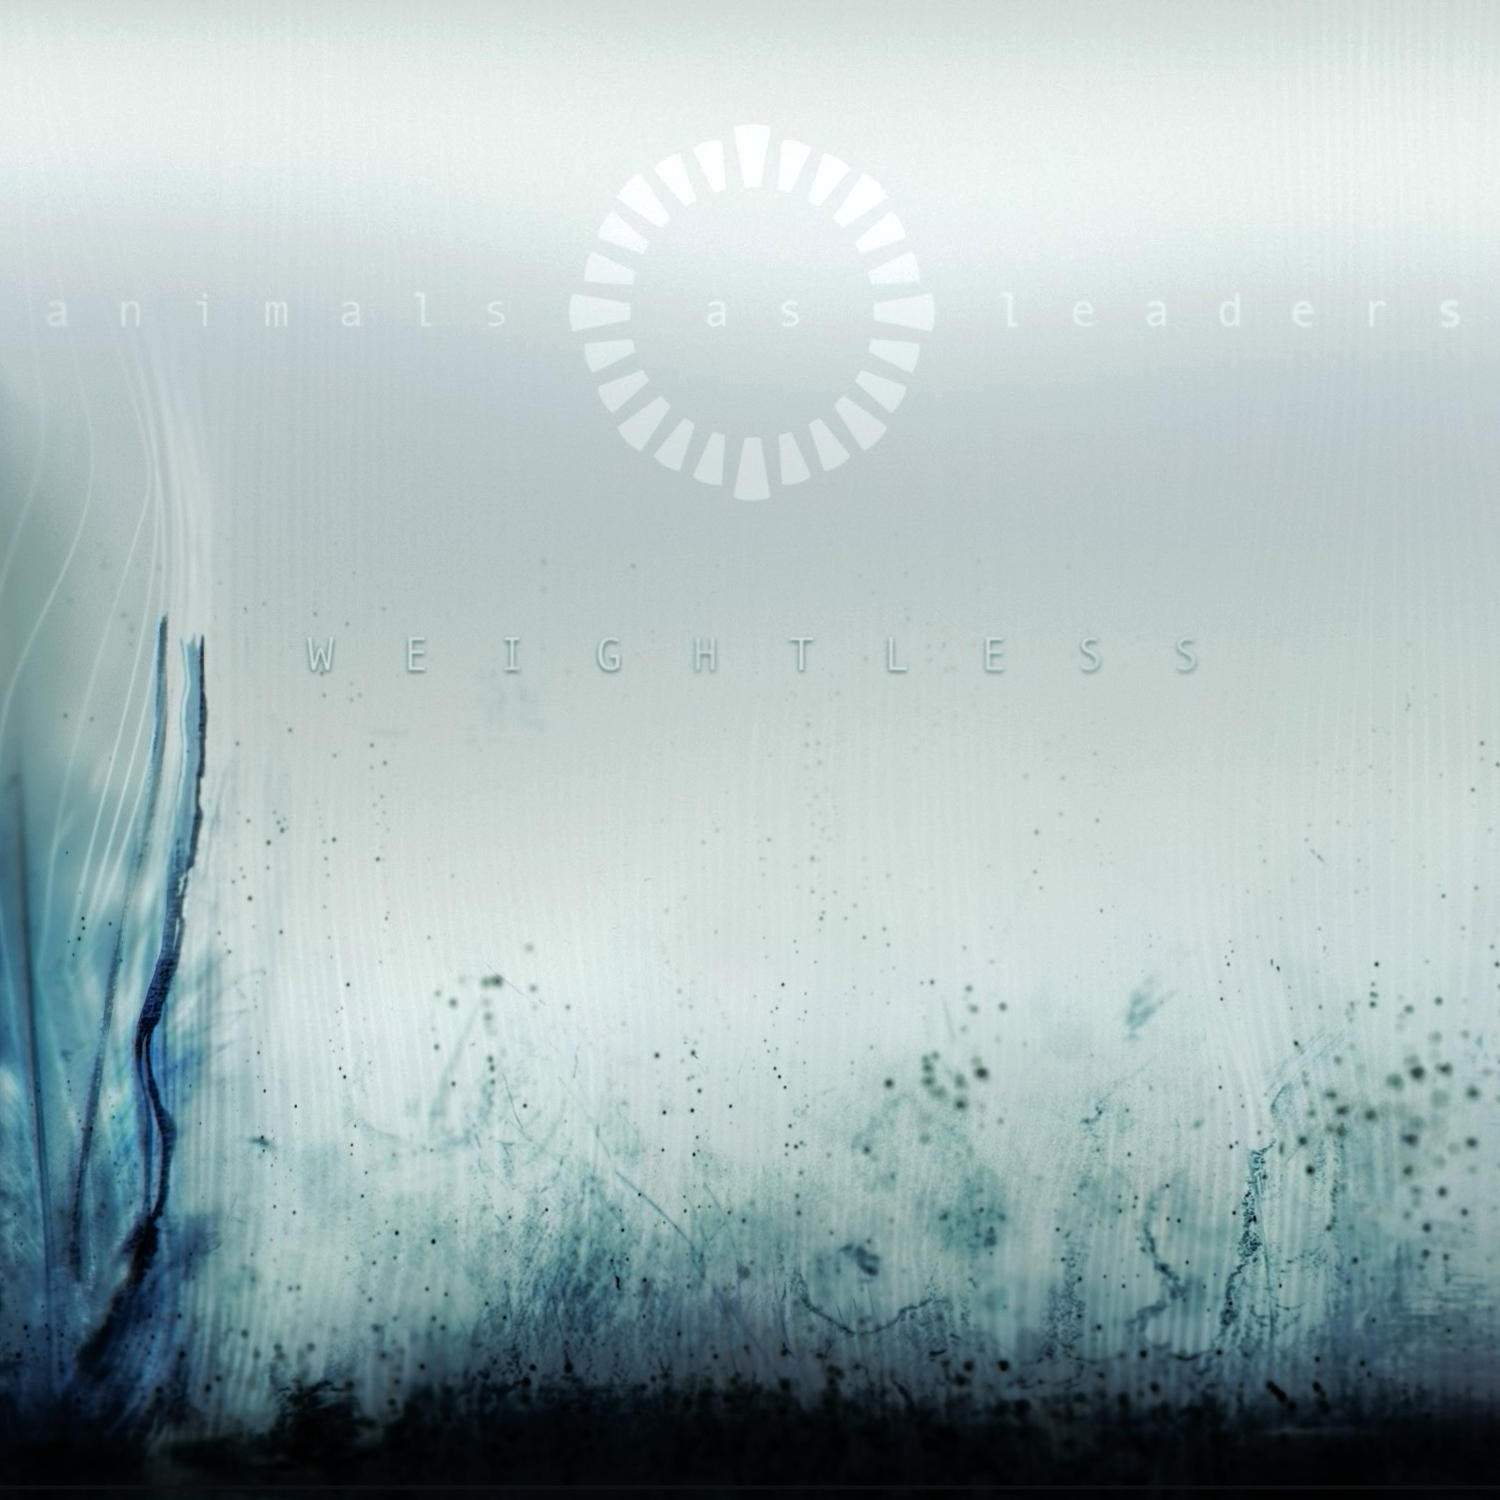 Animals As Leaders Backgrounds, Compatible - PC, Mobile, Gadgets  1500x1500 px